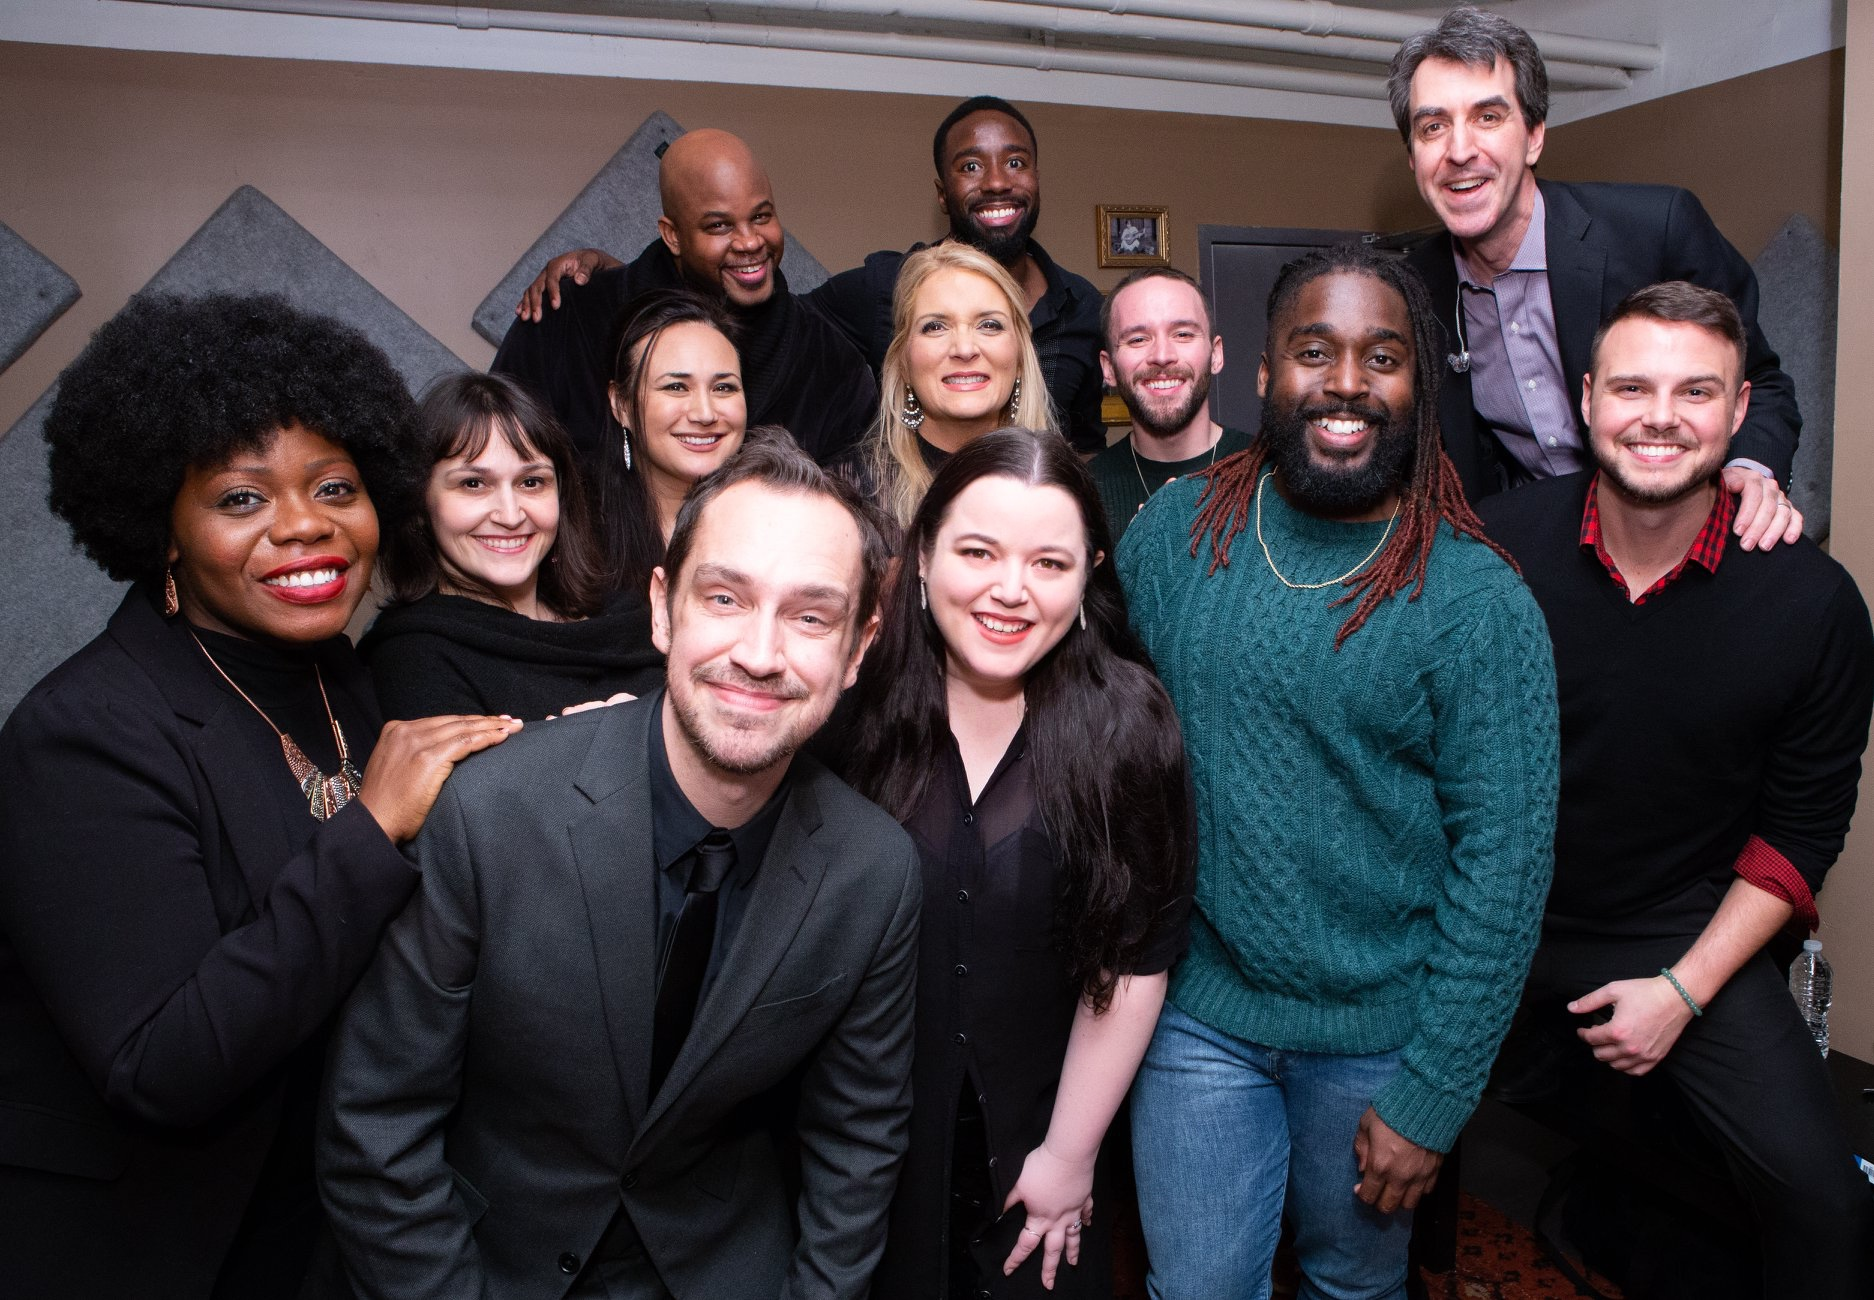 Backstage at SubCulture with Jason Robert Brown and Mykal Kilgore